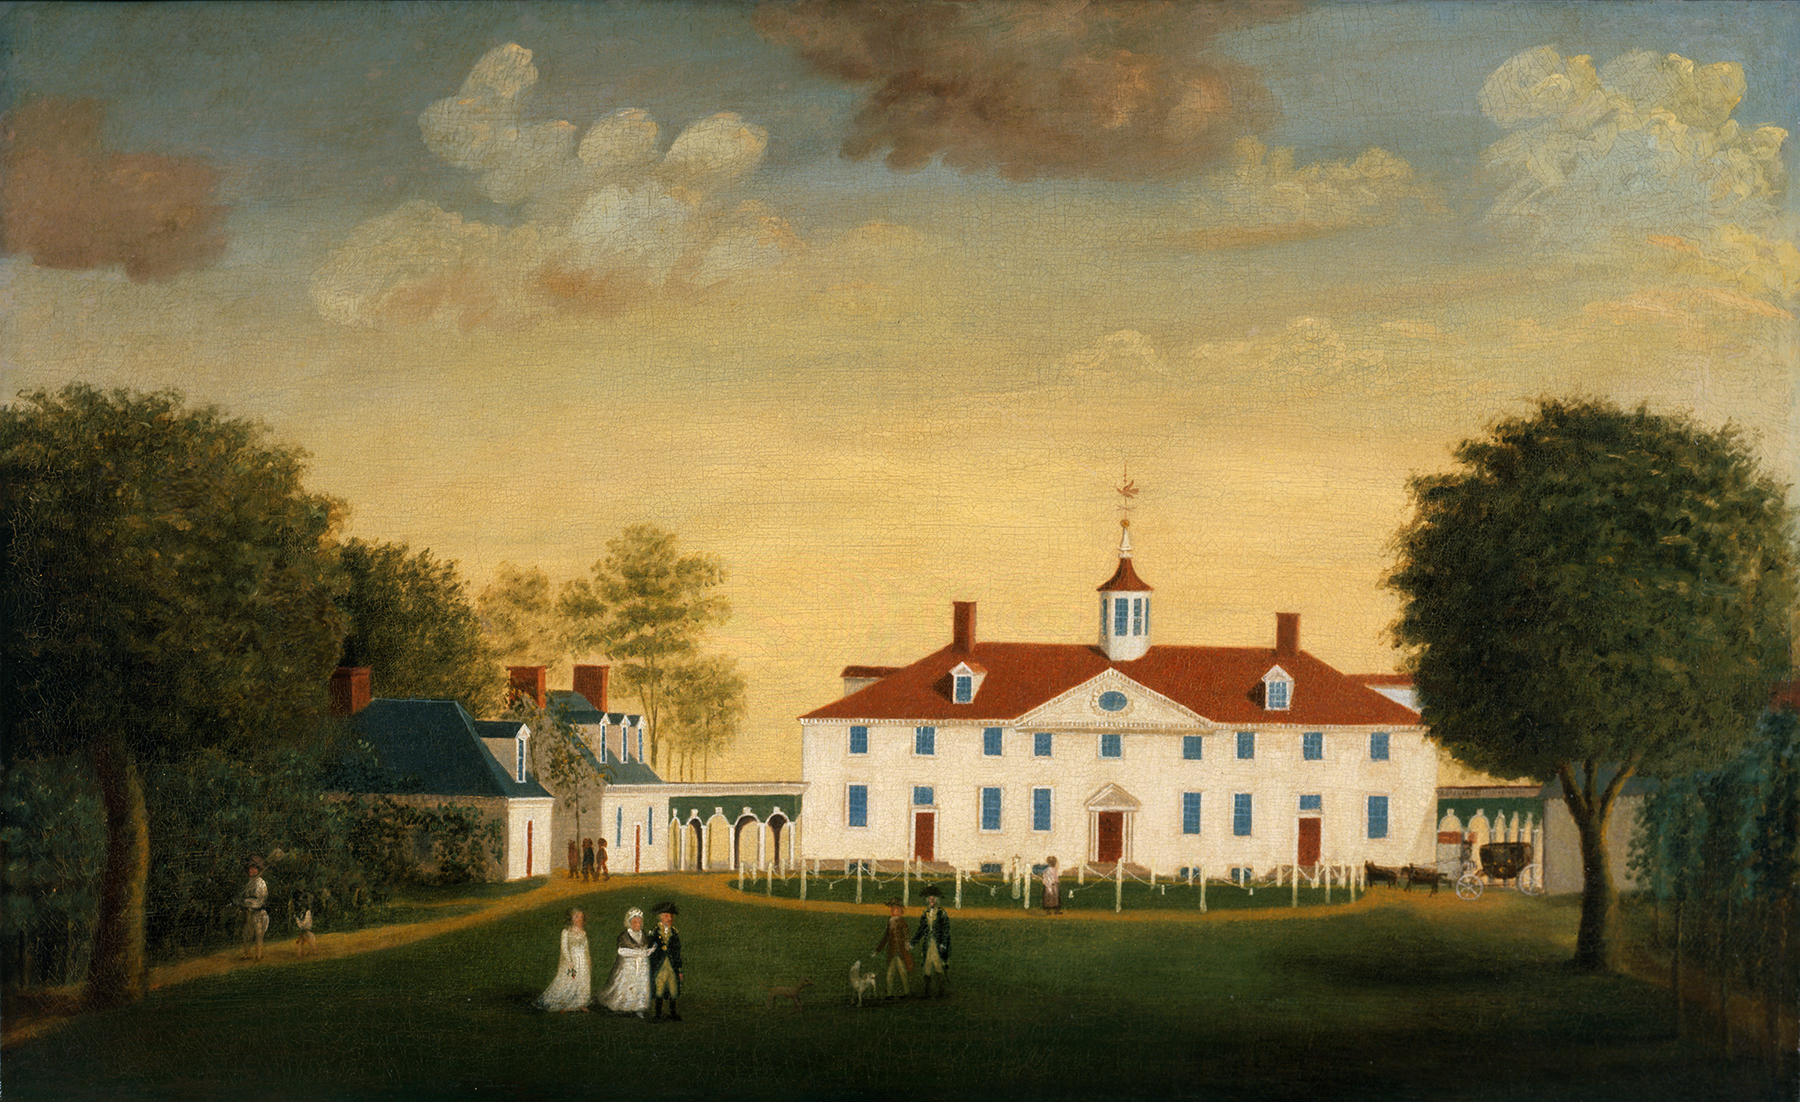 The West Front of Mount Vernon by Edward Savage (American, 1761 - 1817), c. 1787-1792, oil on canvas, H-2445/B, Mount Vernon Ladies' Association, Bequest of Helen W. Thompson.